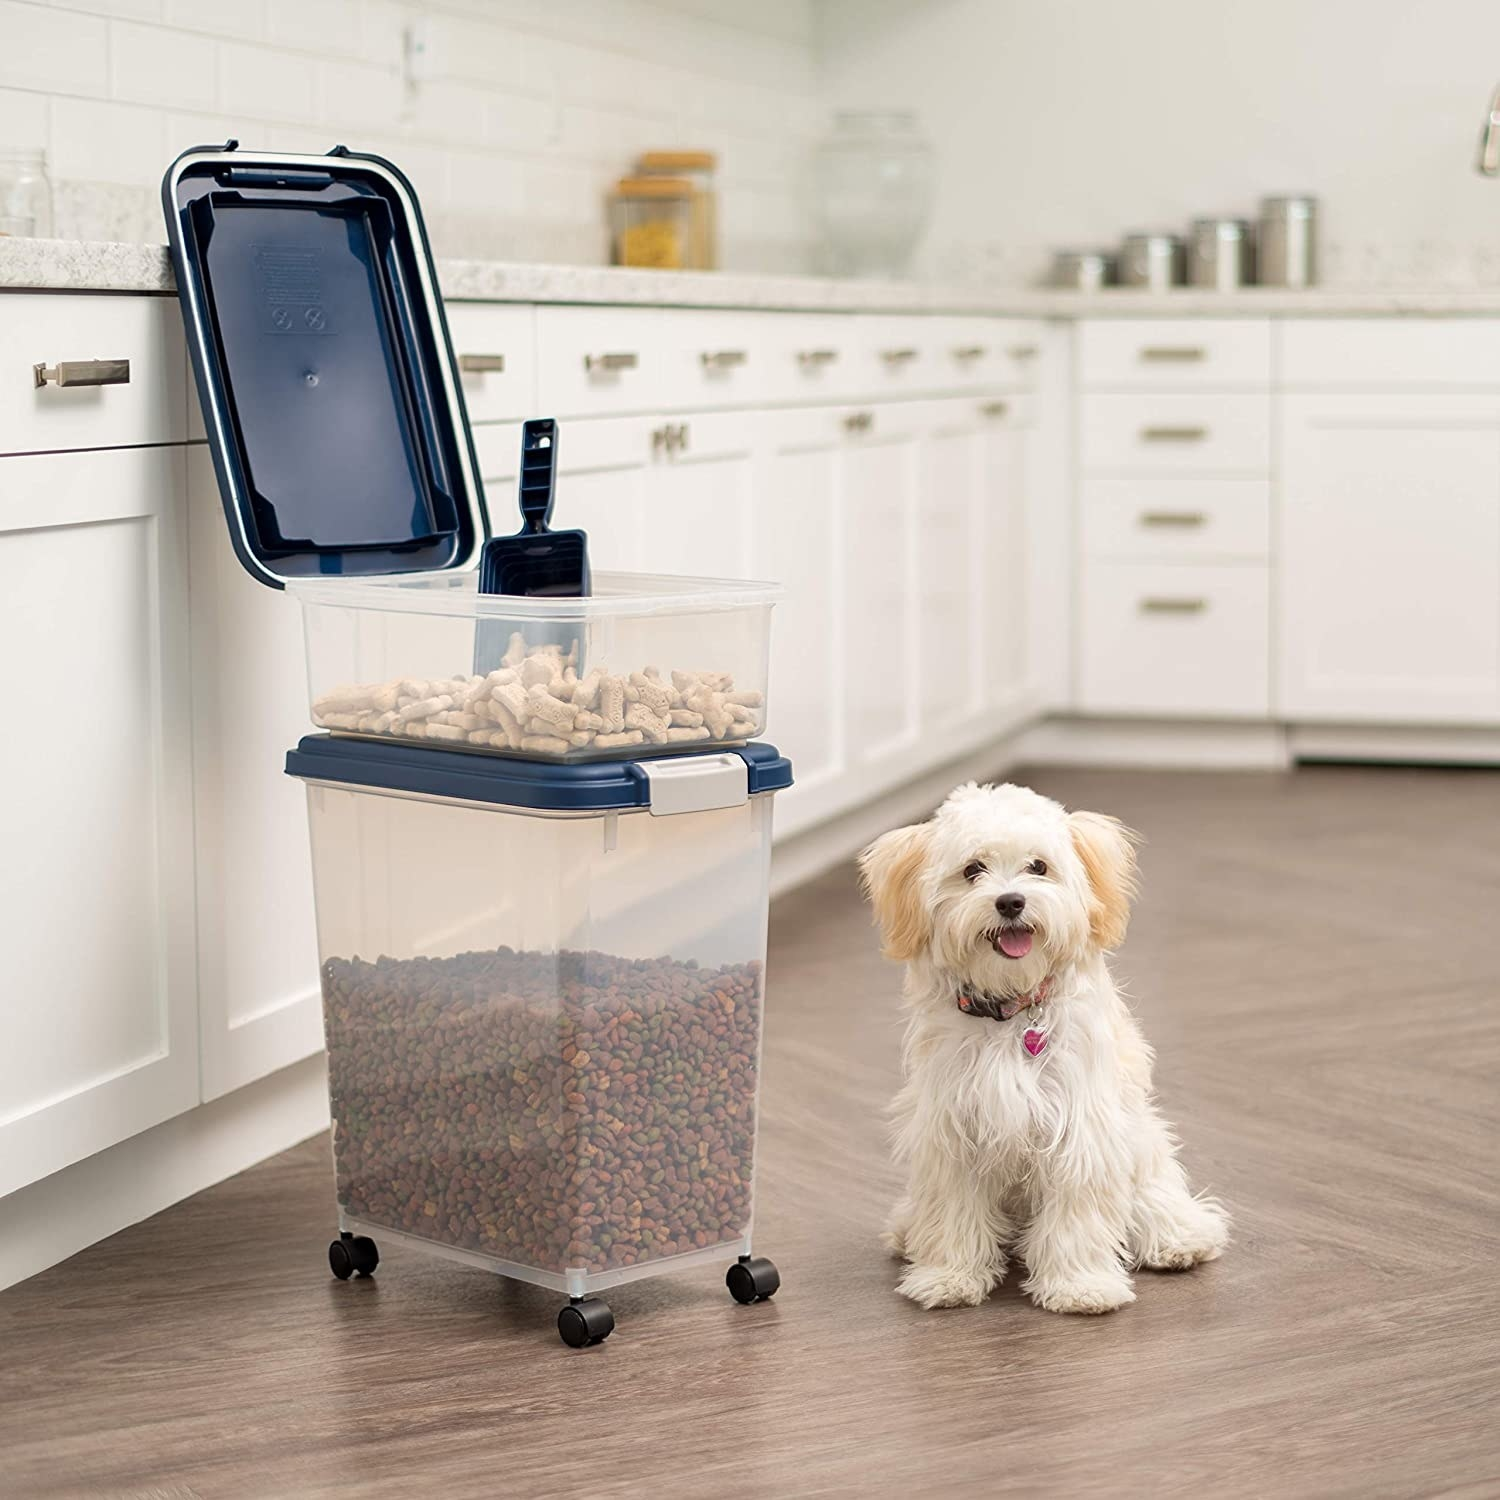 a dog sitting next to the food storage container